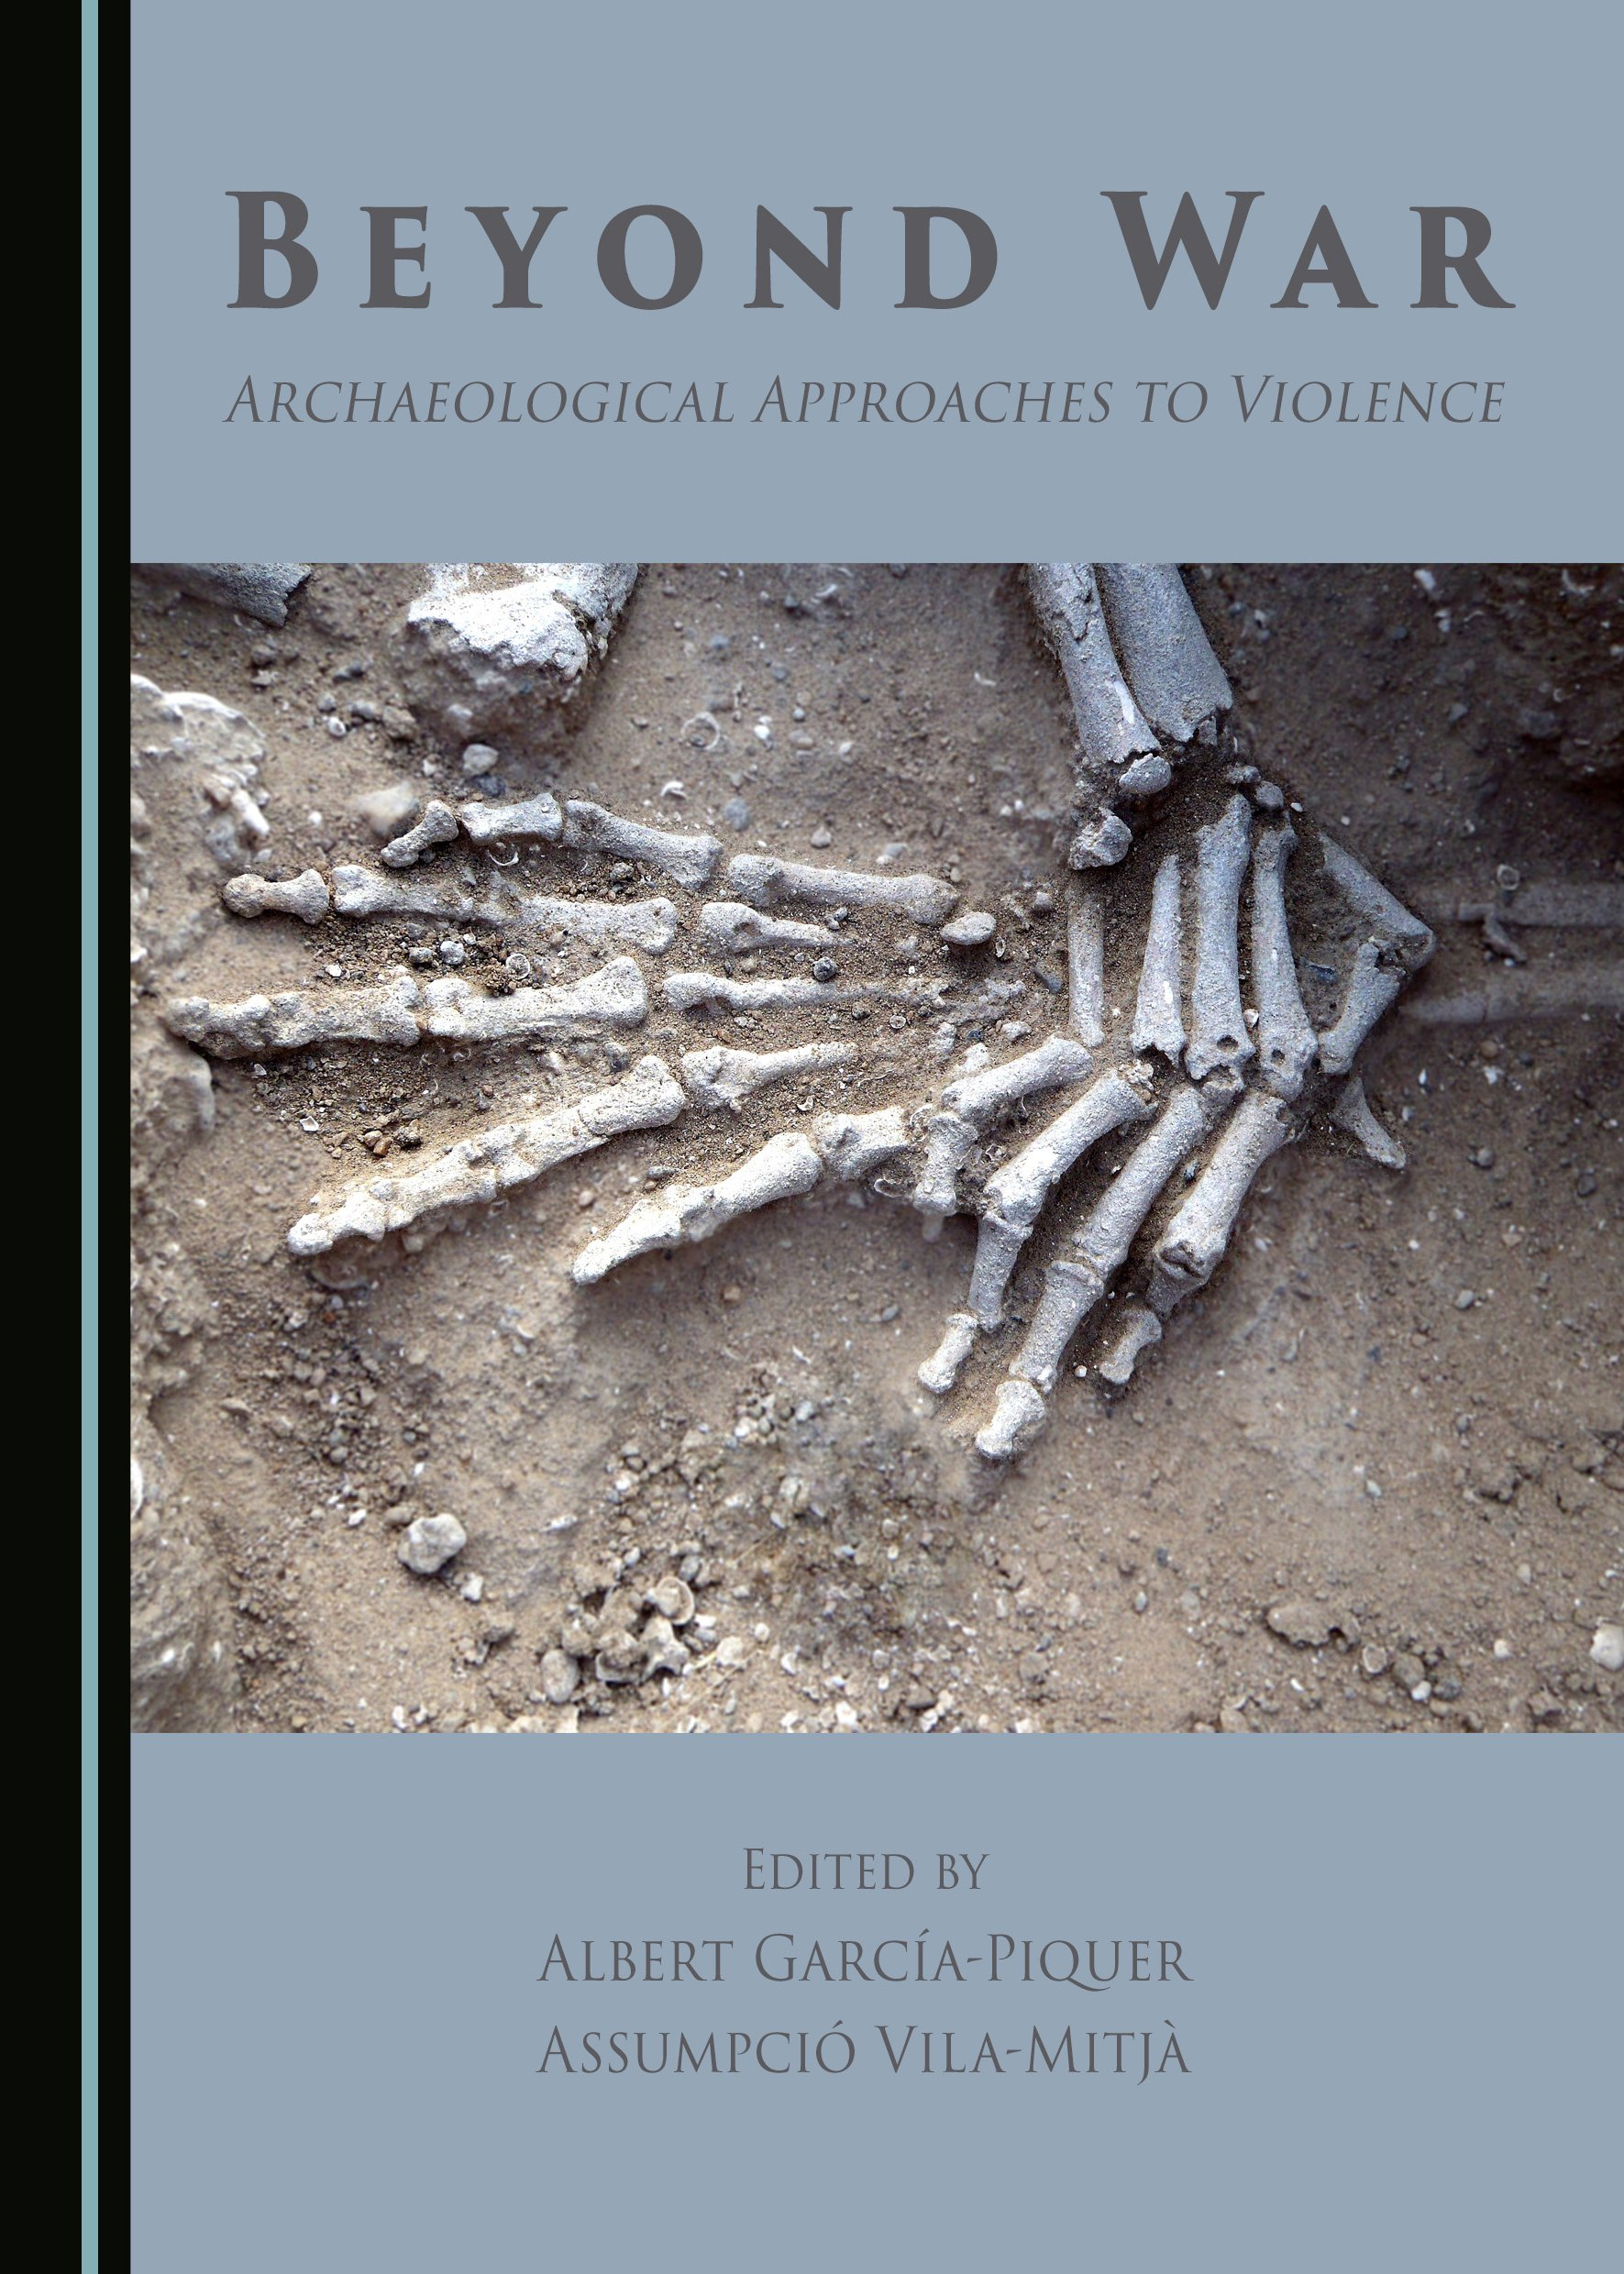 Beyond War: Archaeological Approaches to Violence